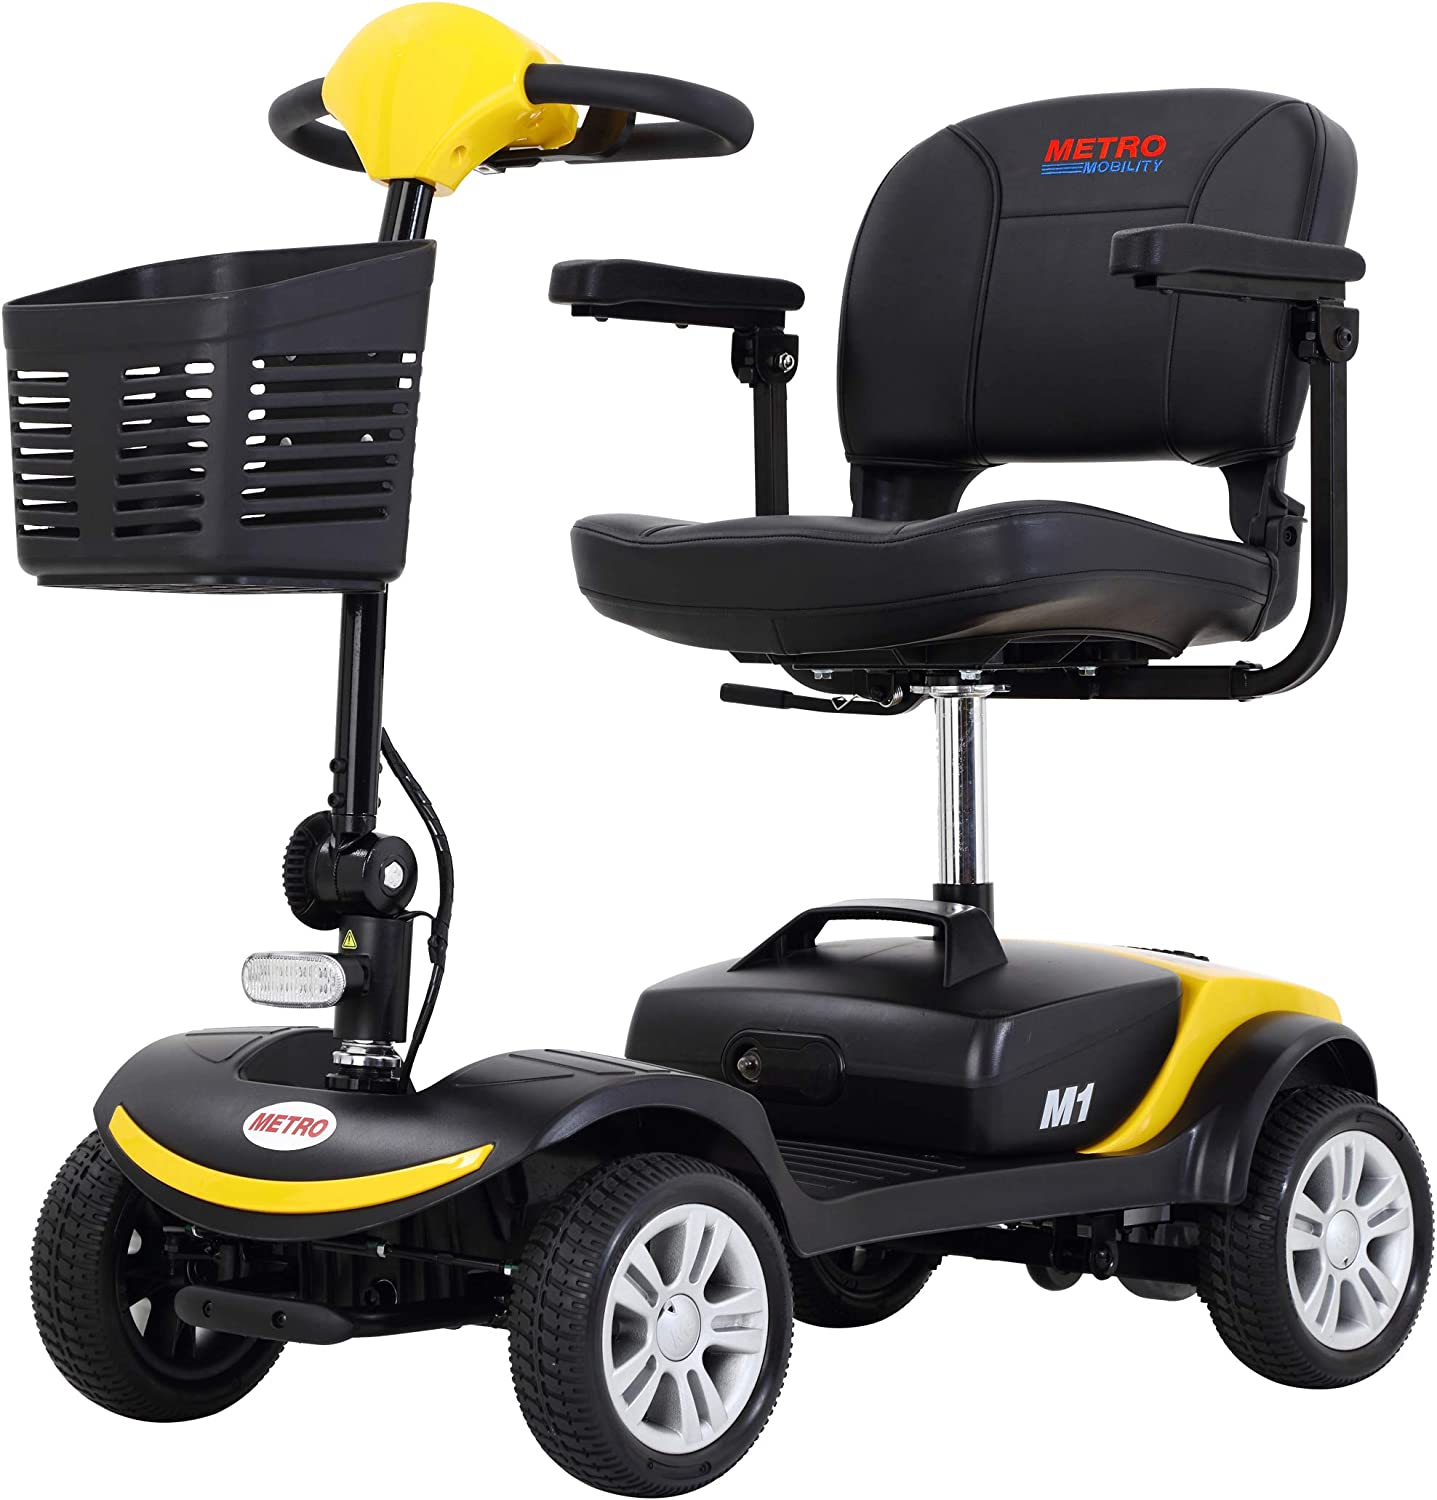 Limited Special Price 4 Wheel Mobility Scooter Electric - Courier shipping free shipping Wheelchair Device Co Powered